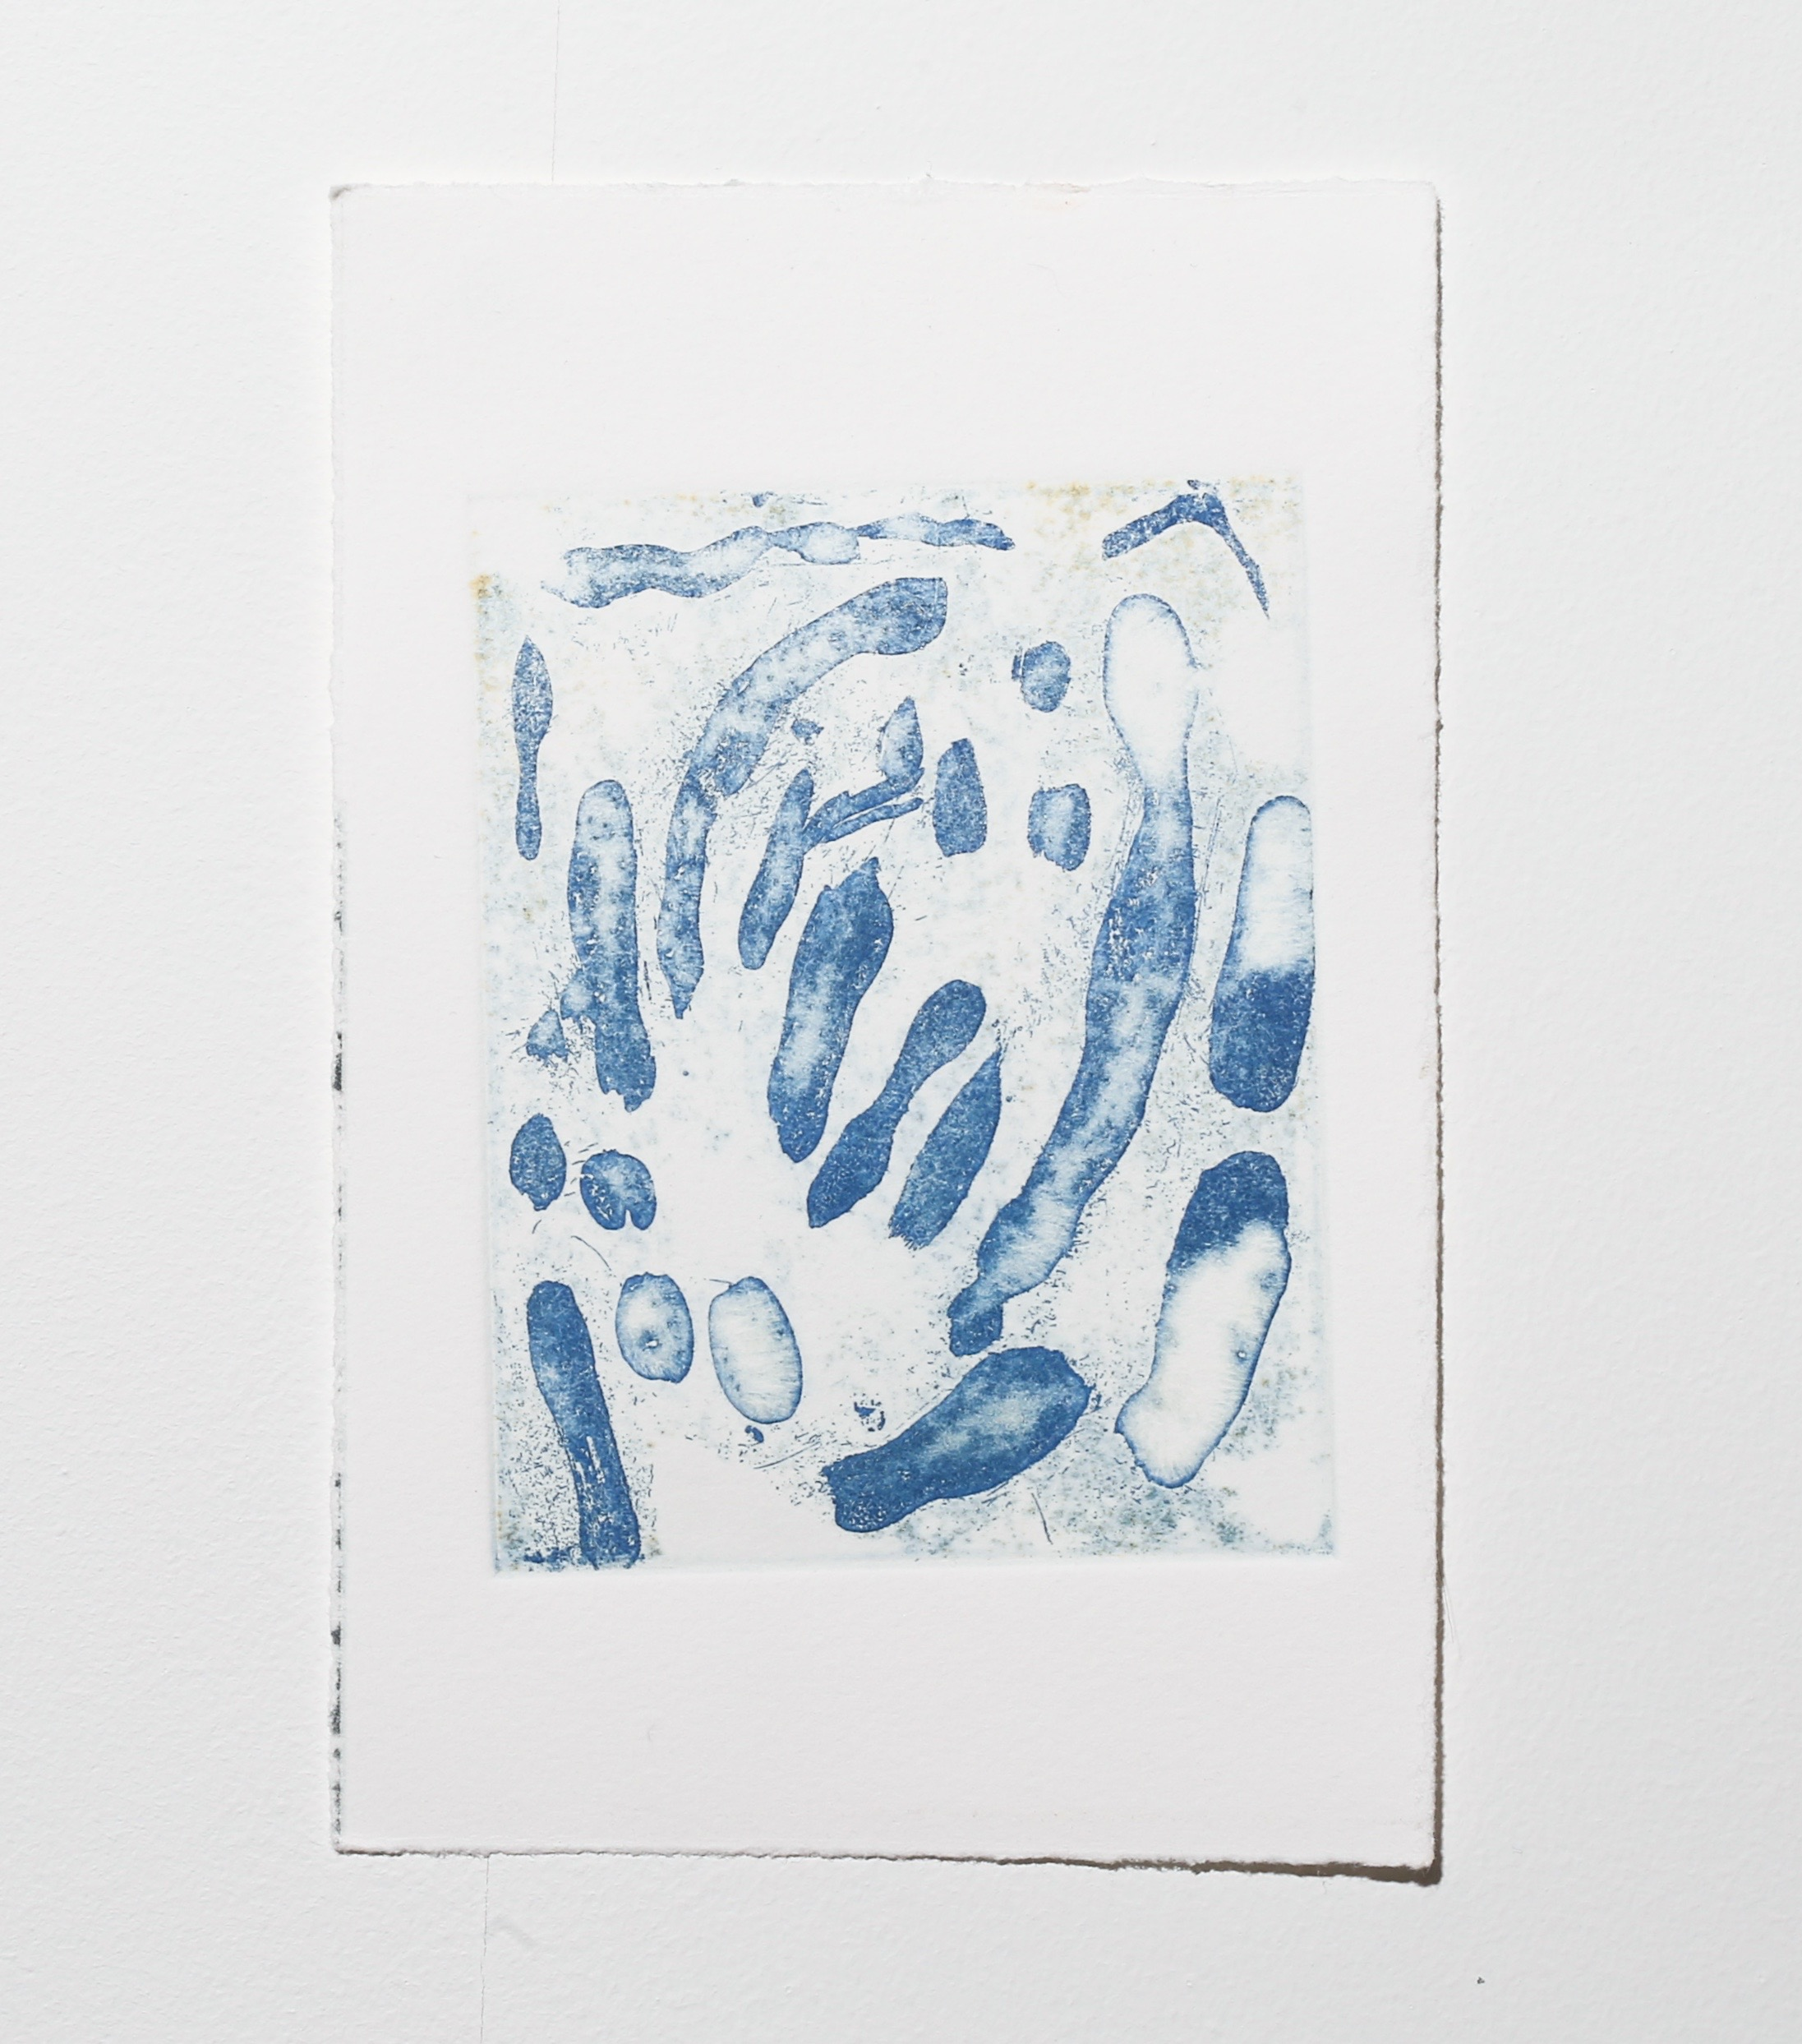 Deep (blue) , 2019, sugar lift etching, 11.5 x 9 cm (plate size), $65